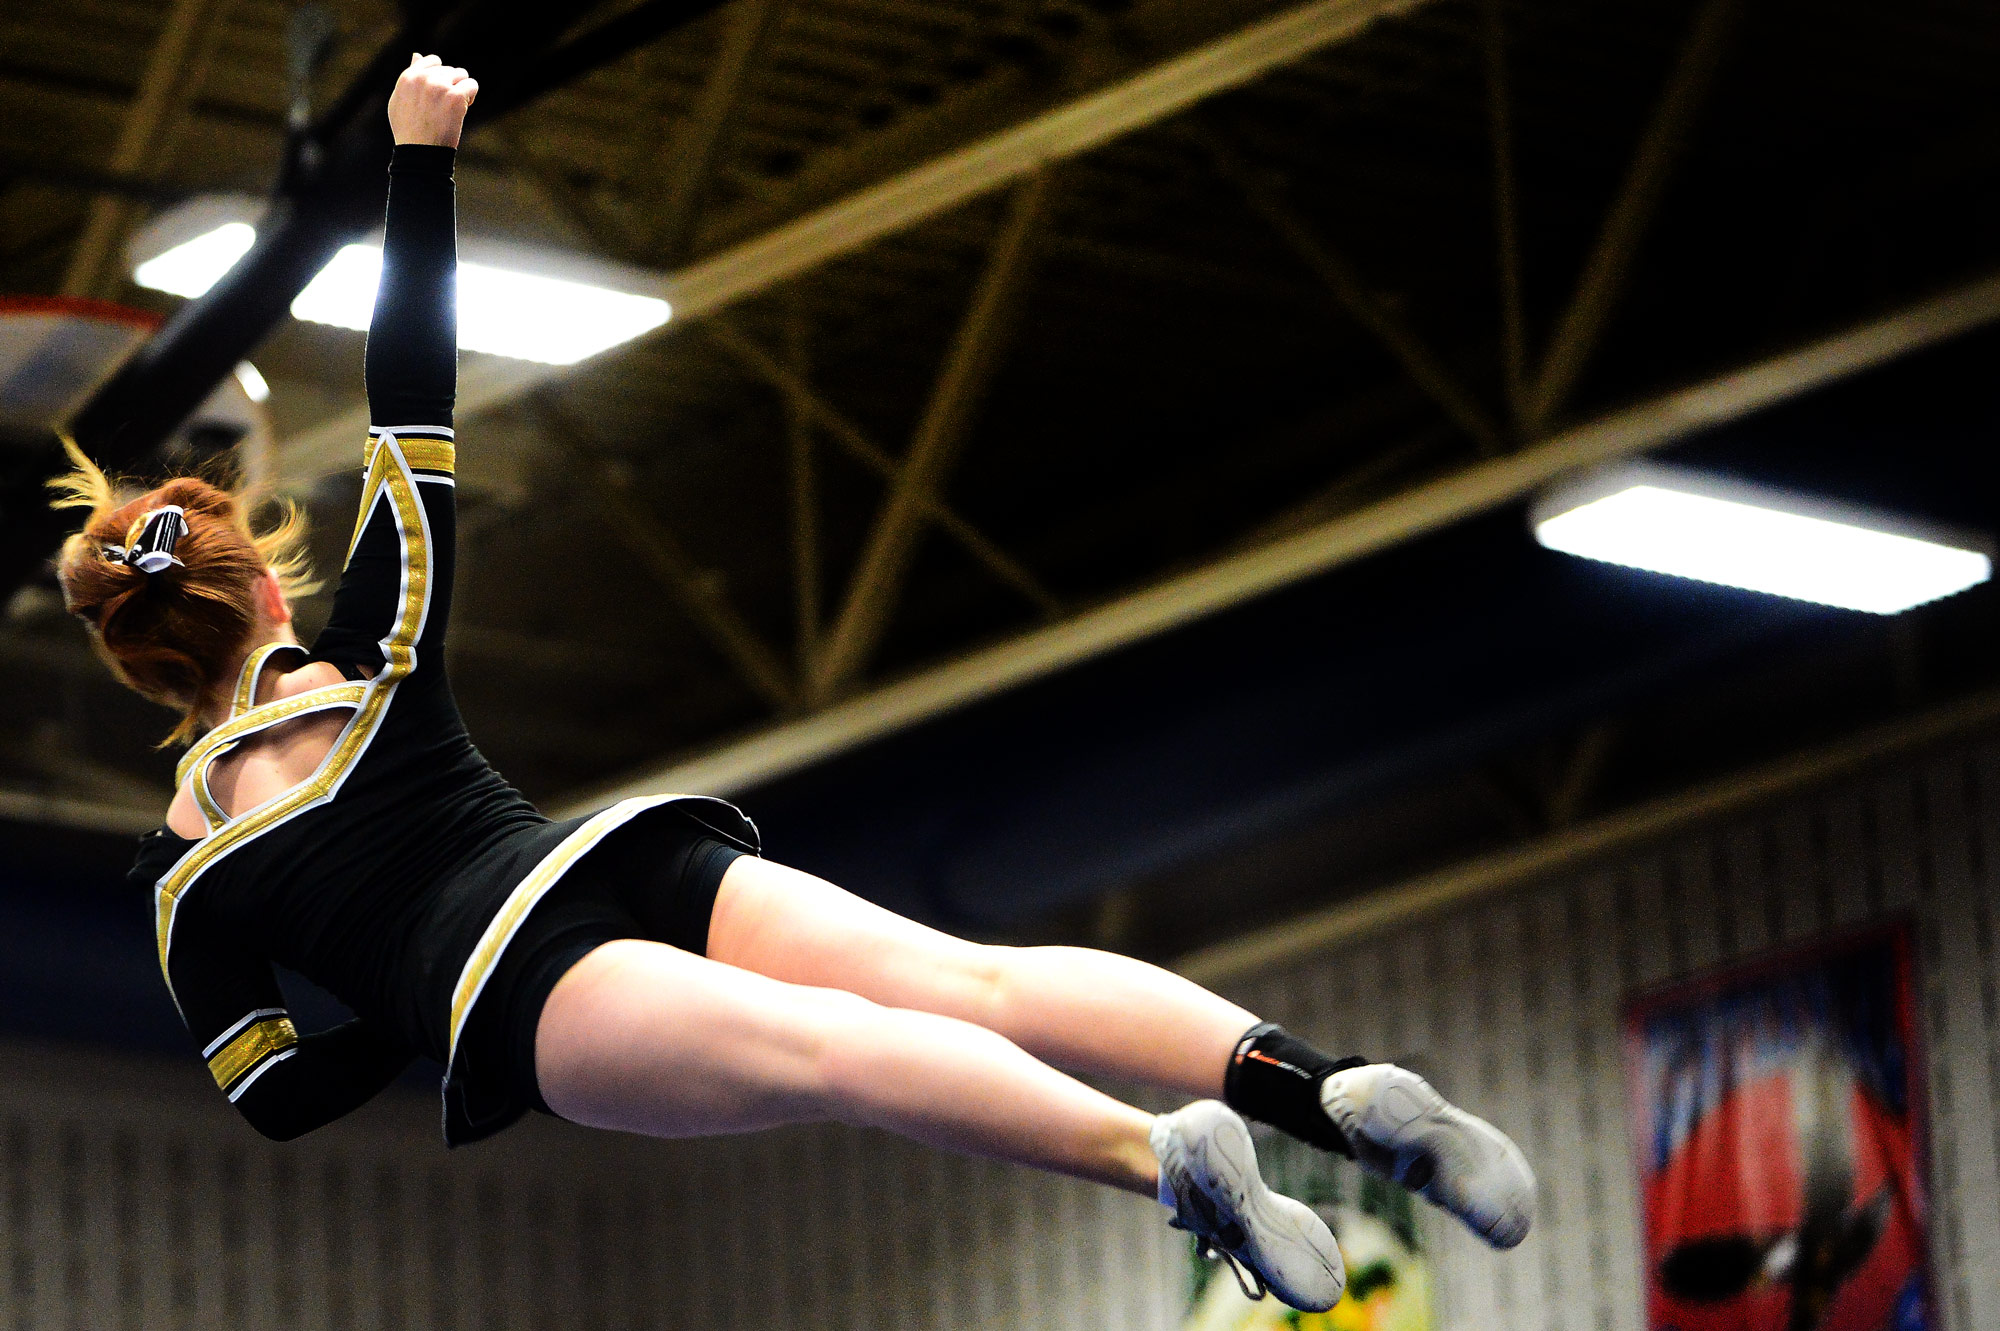 Mount Hebron sophomore Emily Turner is flips through the air.